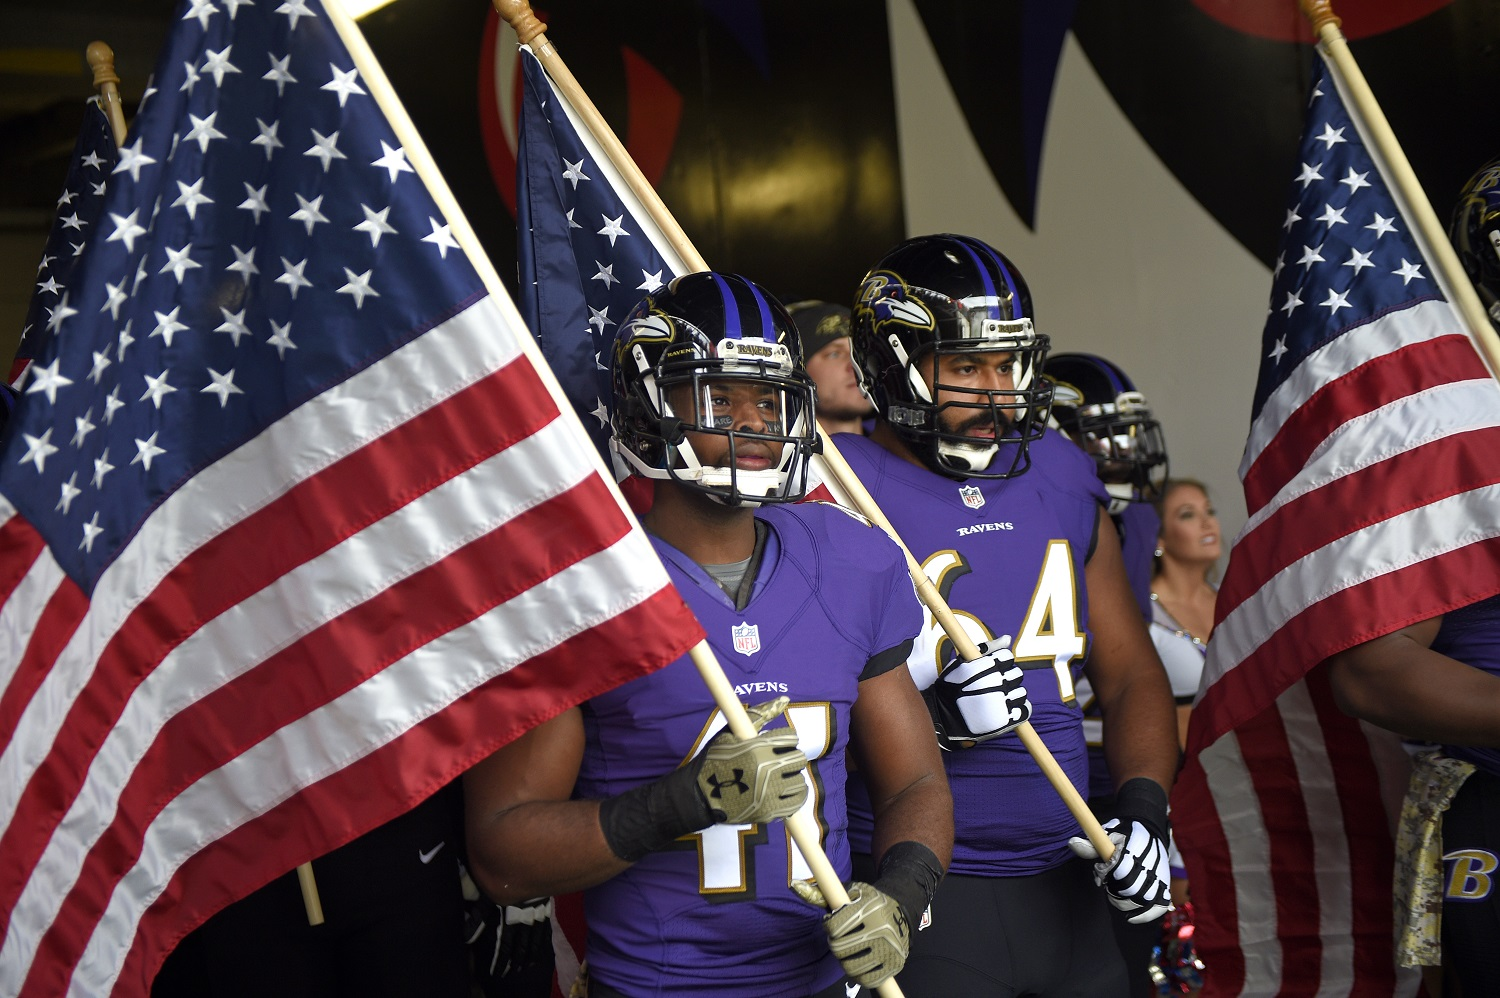 Baltimore Ravens cornerback Anthony Levine (41) and offensive guard John Urschel (64) wait to run onto the field with United States flags before an NFL football game against the Pittsburgh Steelers, Sunday, Nov. 6, 2016, in Baltimore. (AP Photo/Nick Wass)